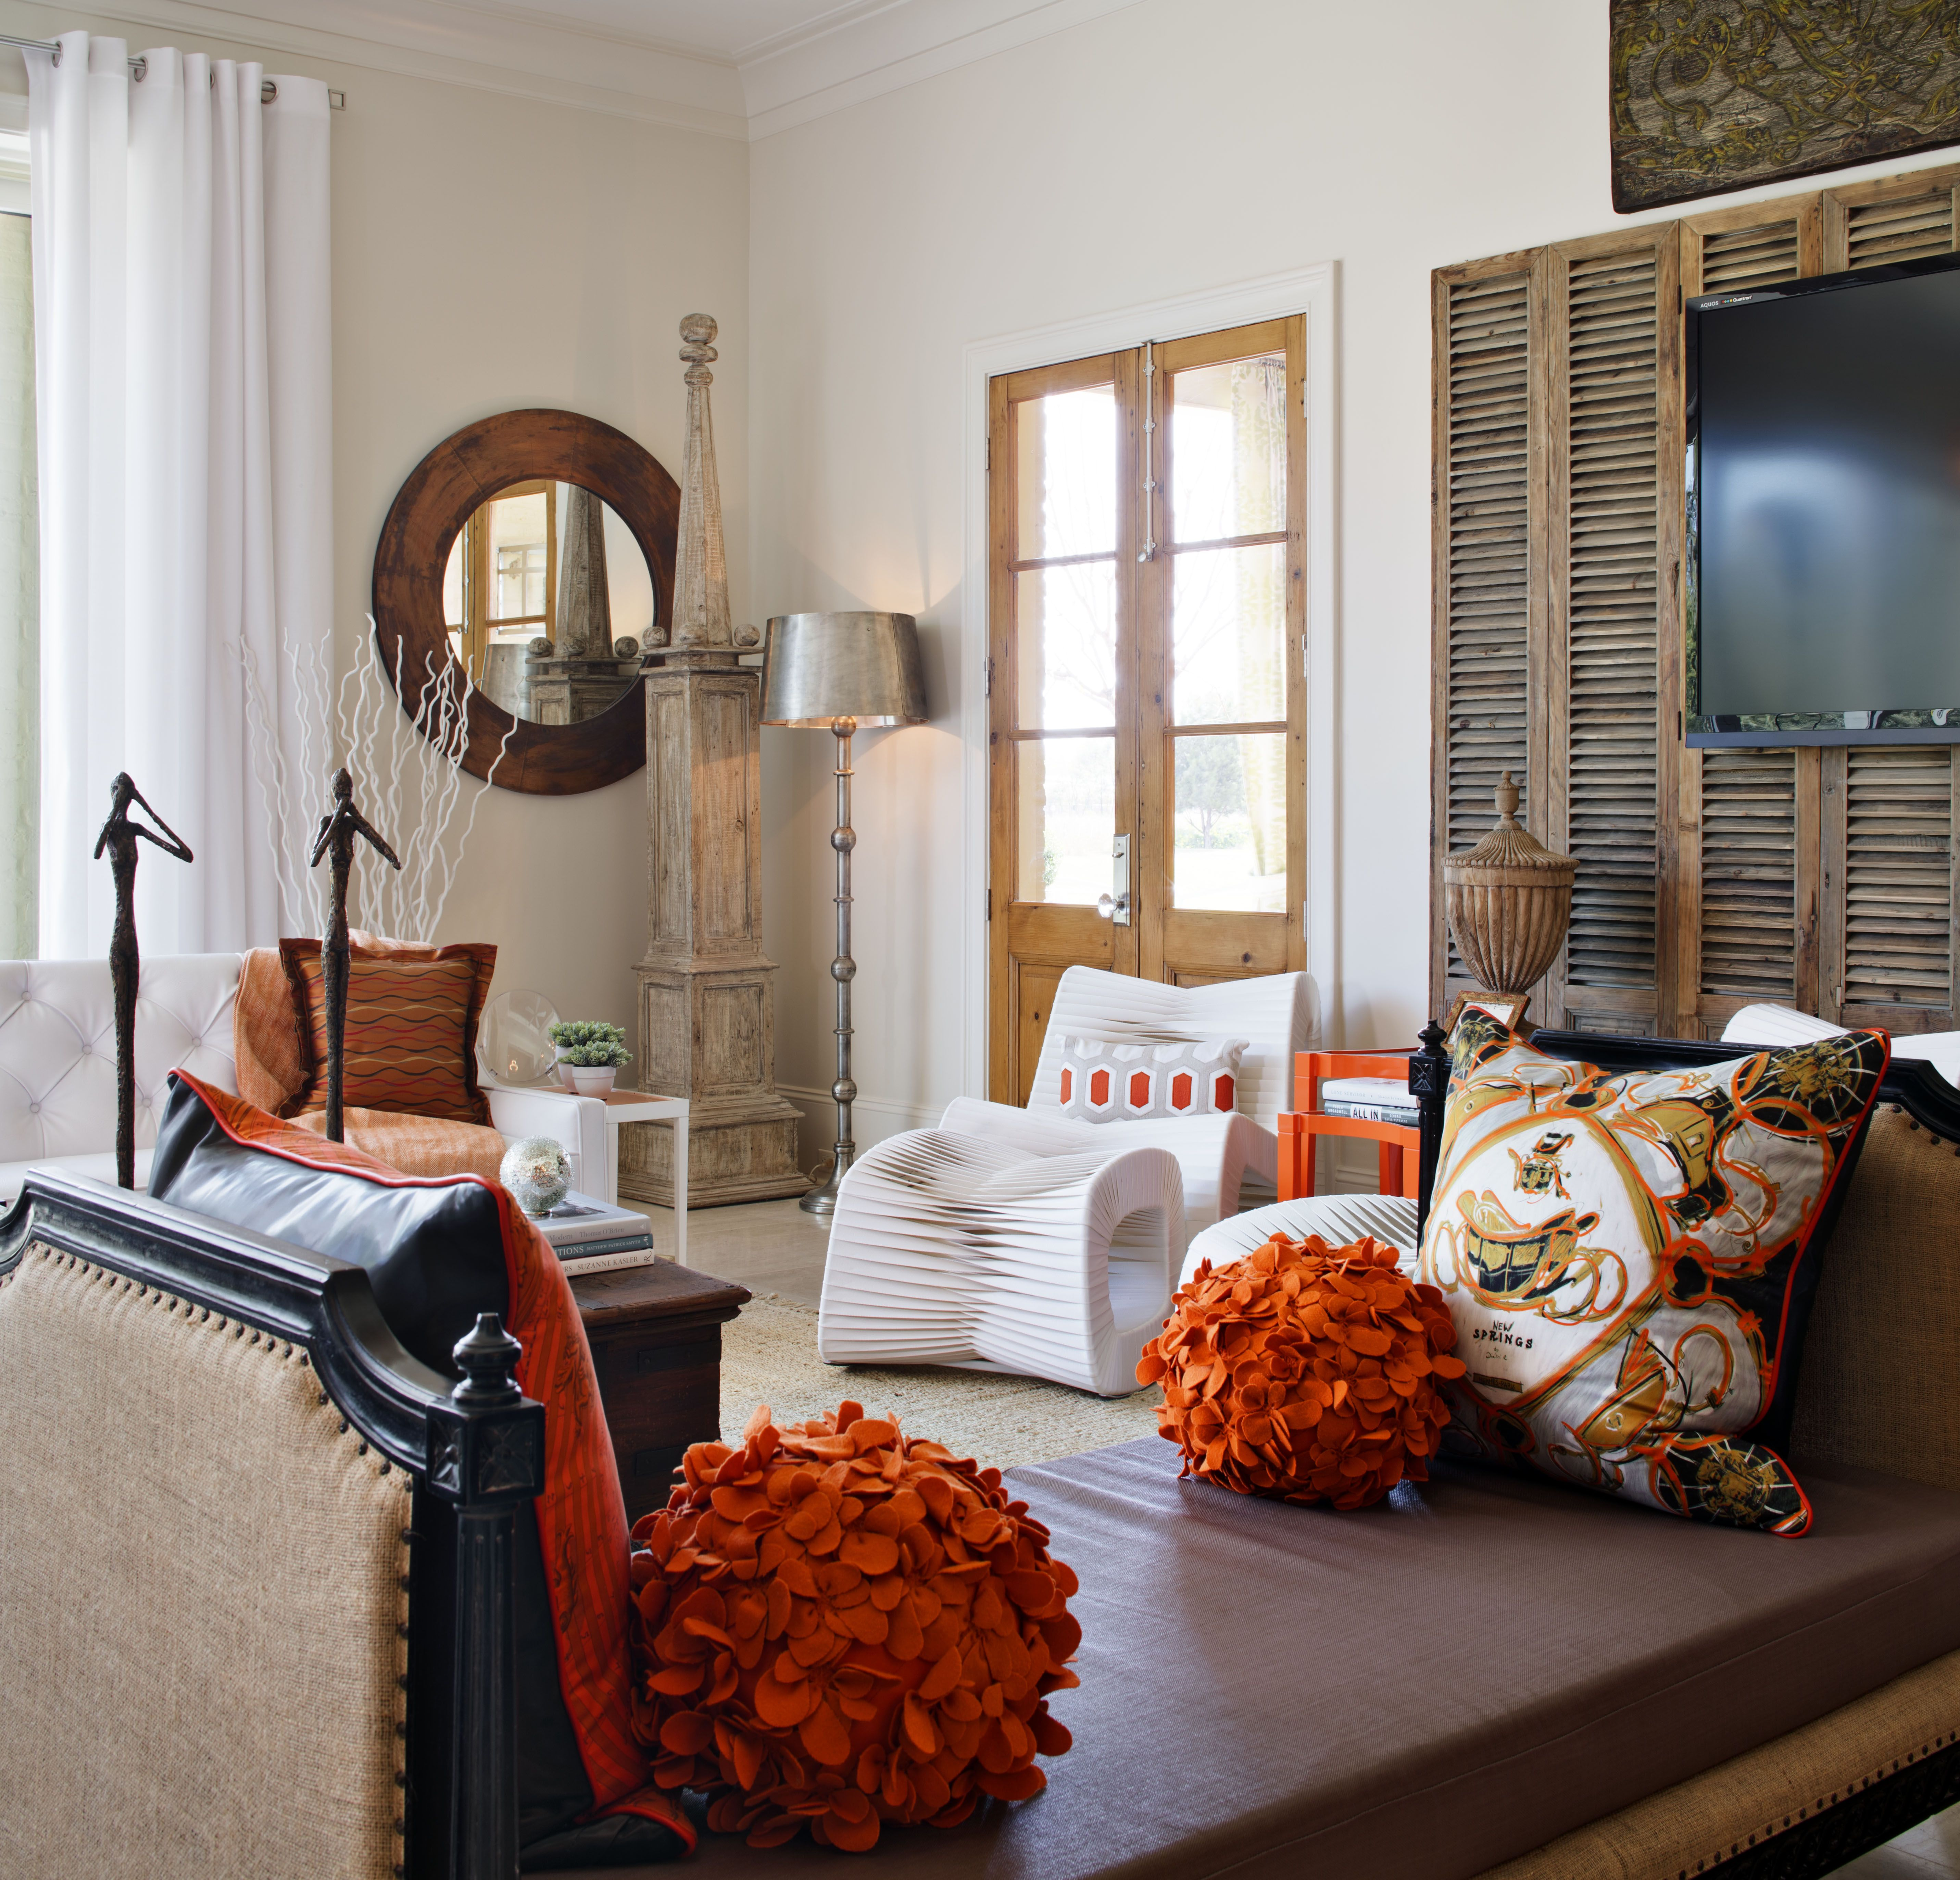 Pin By Karen Crawn On Home Decor: Pin By Karen Giffel Interior Design On My Design Projects